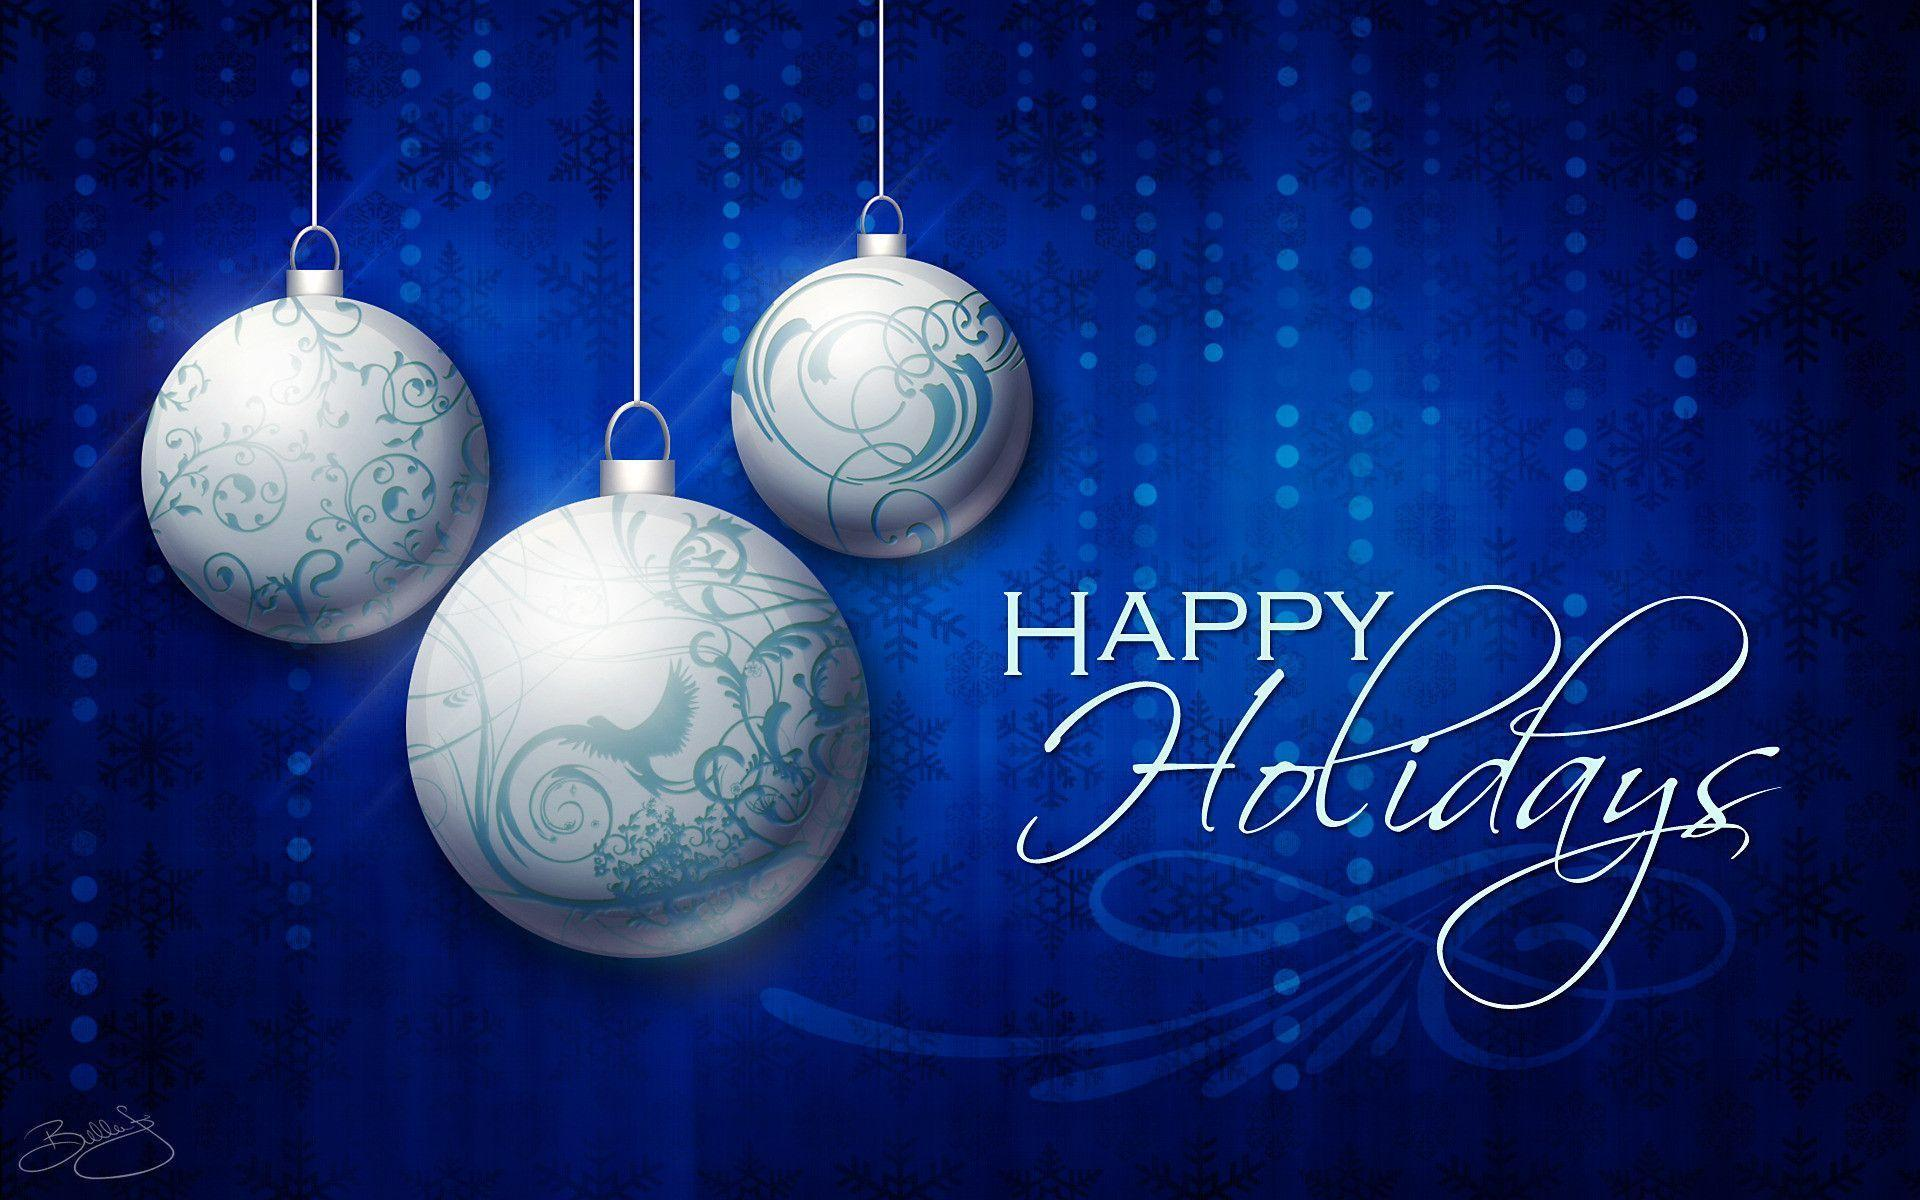 Hd Holidays Wallpapers Top Free Hd Holidays Backgrounds Wallpaperaccess